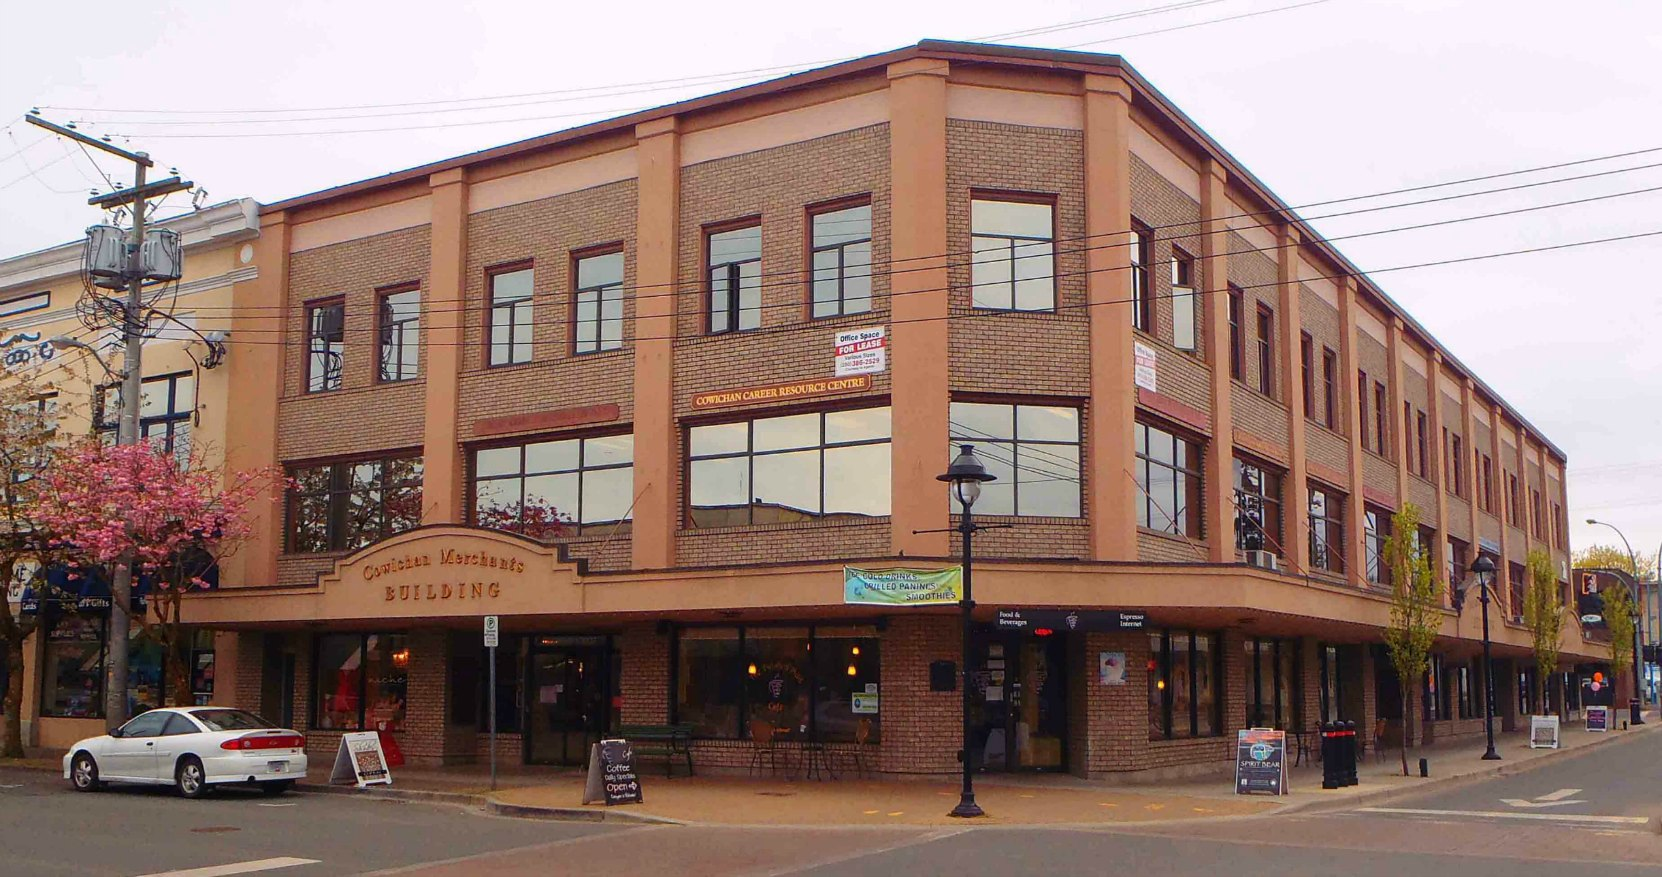 Cowichan Merchants Building, viewed from Station Street and Craig Street